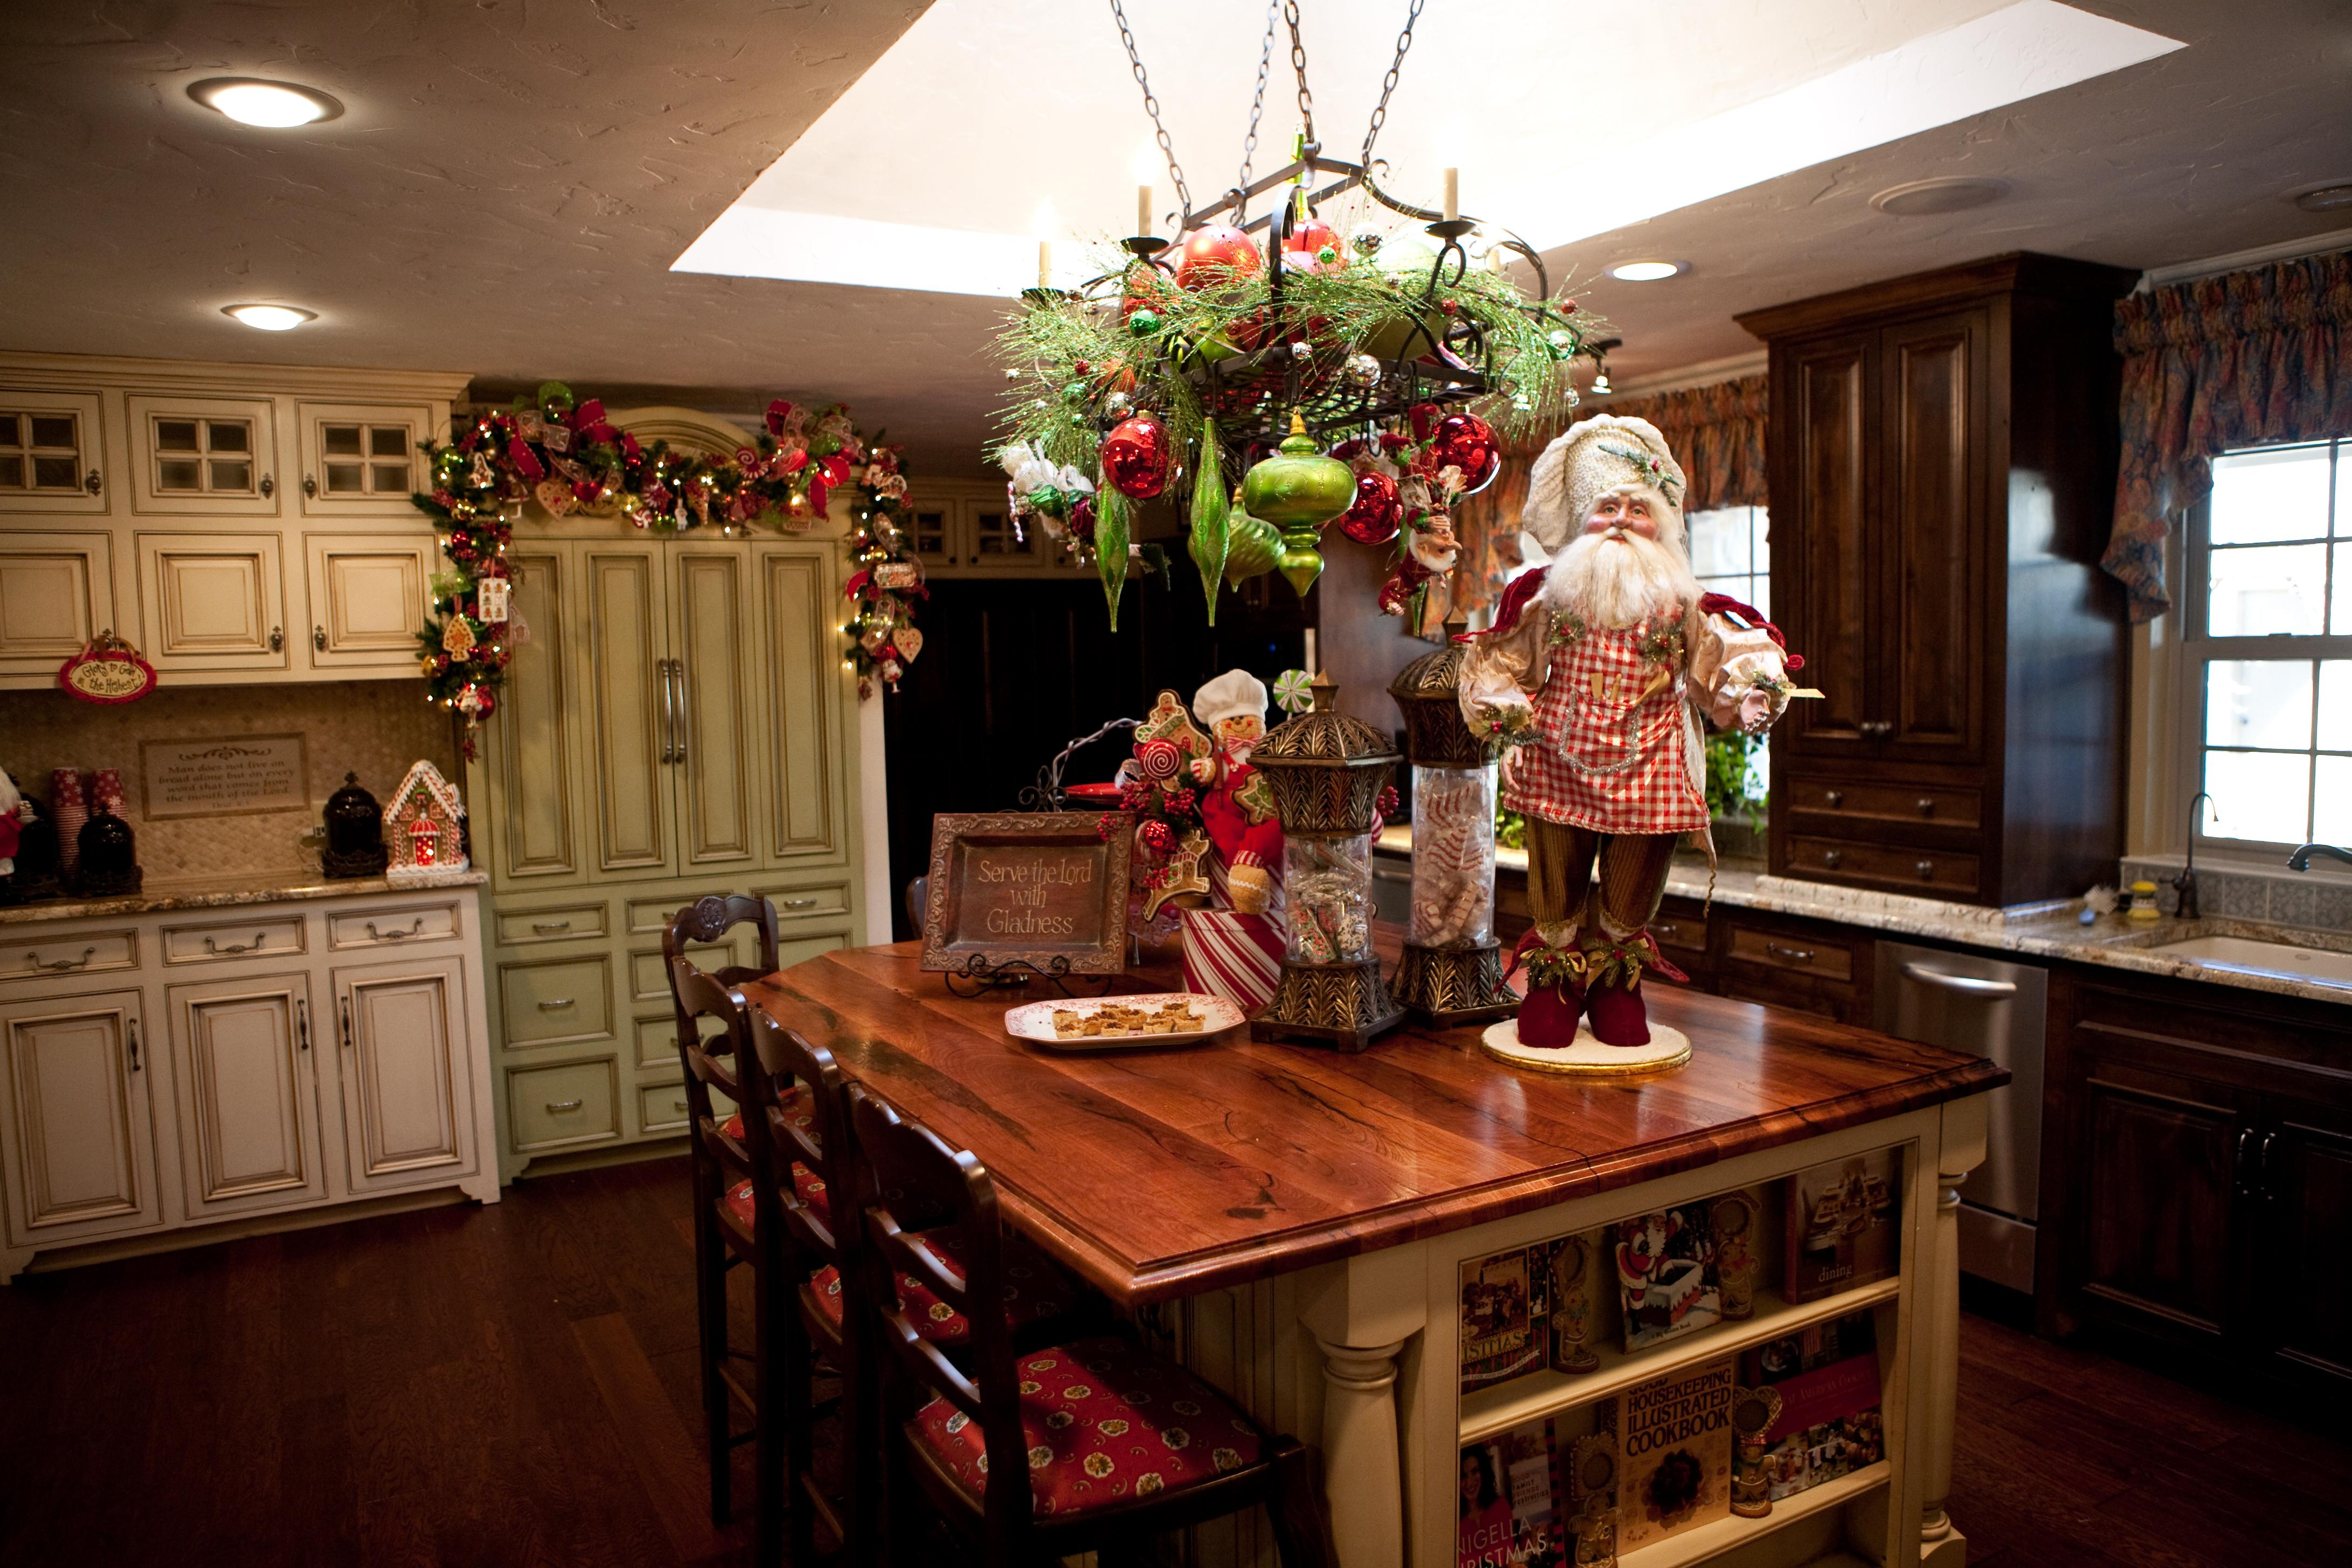 10 Kitchen Christmas Decoration Ideas | Lovely Spaces